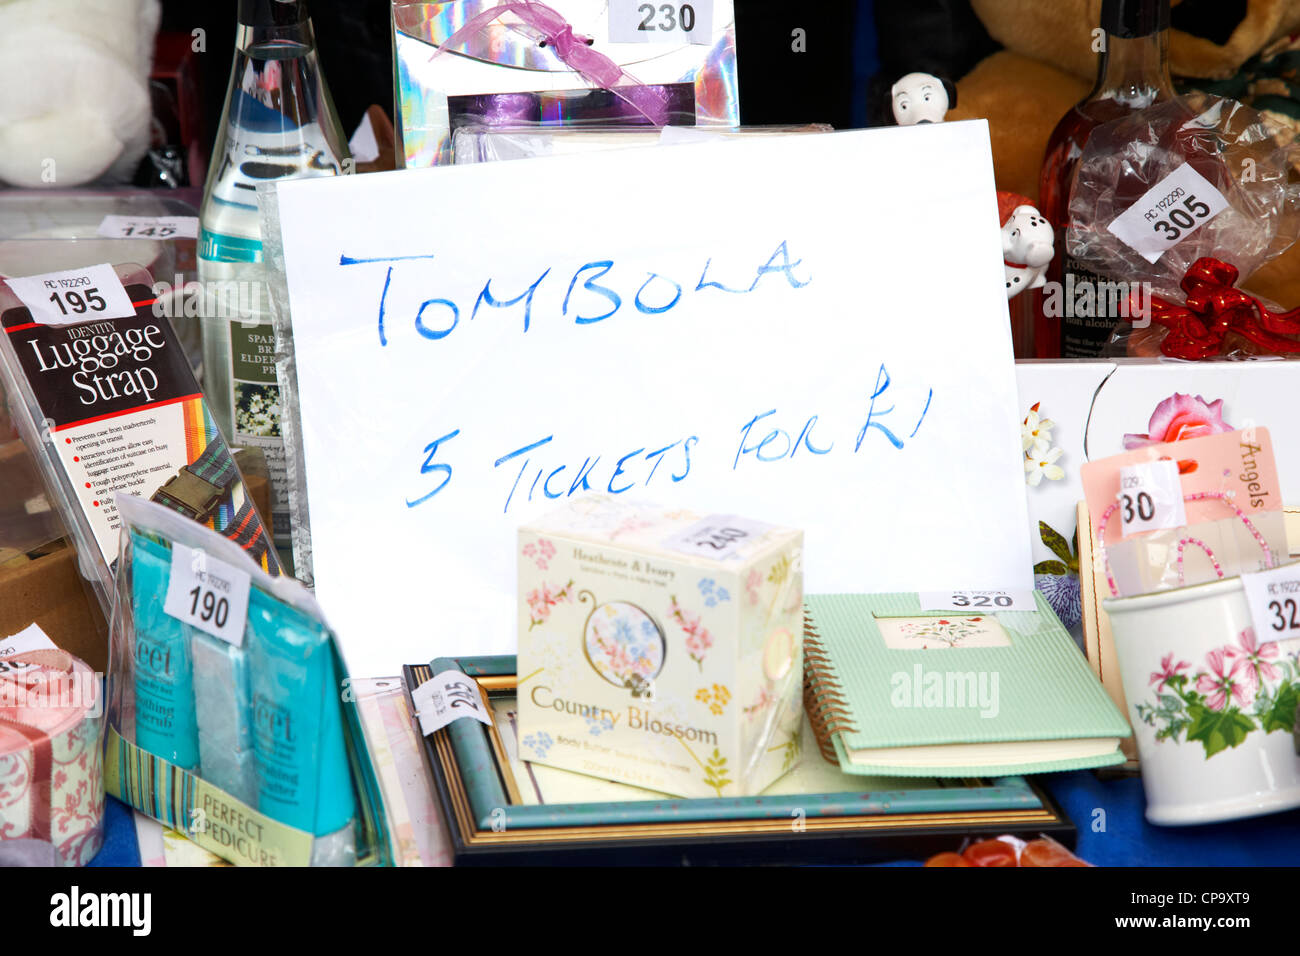 sign for a tombola raffle tickets on a charity shop stall in the uk